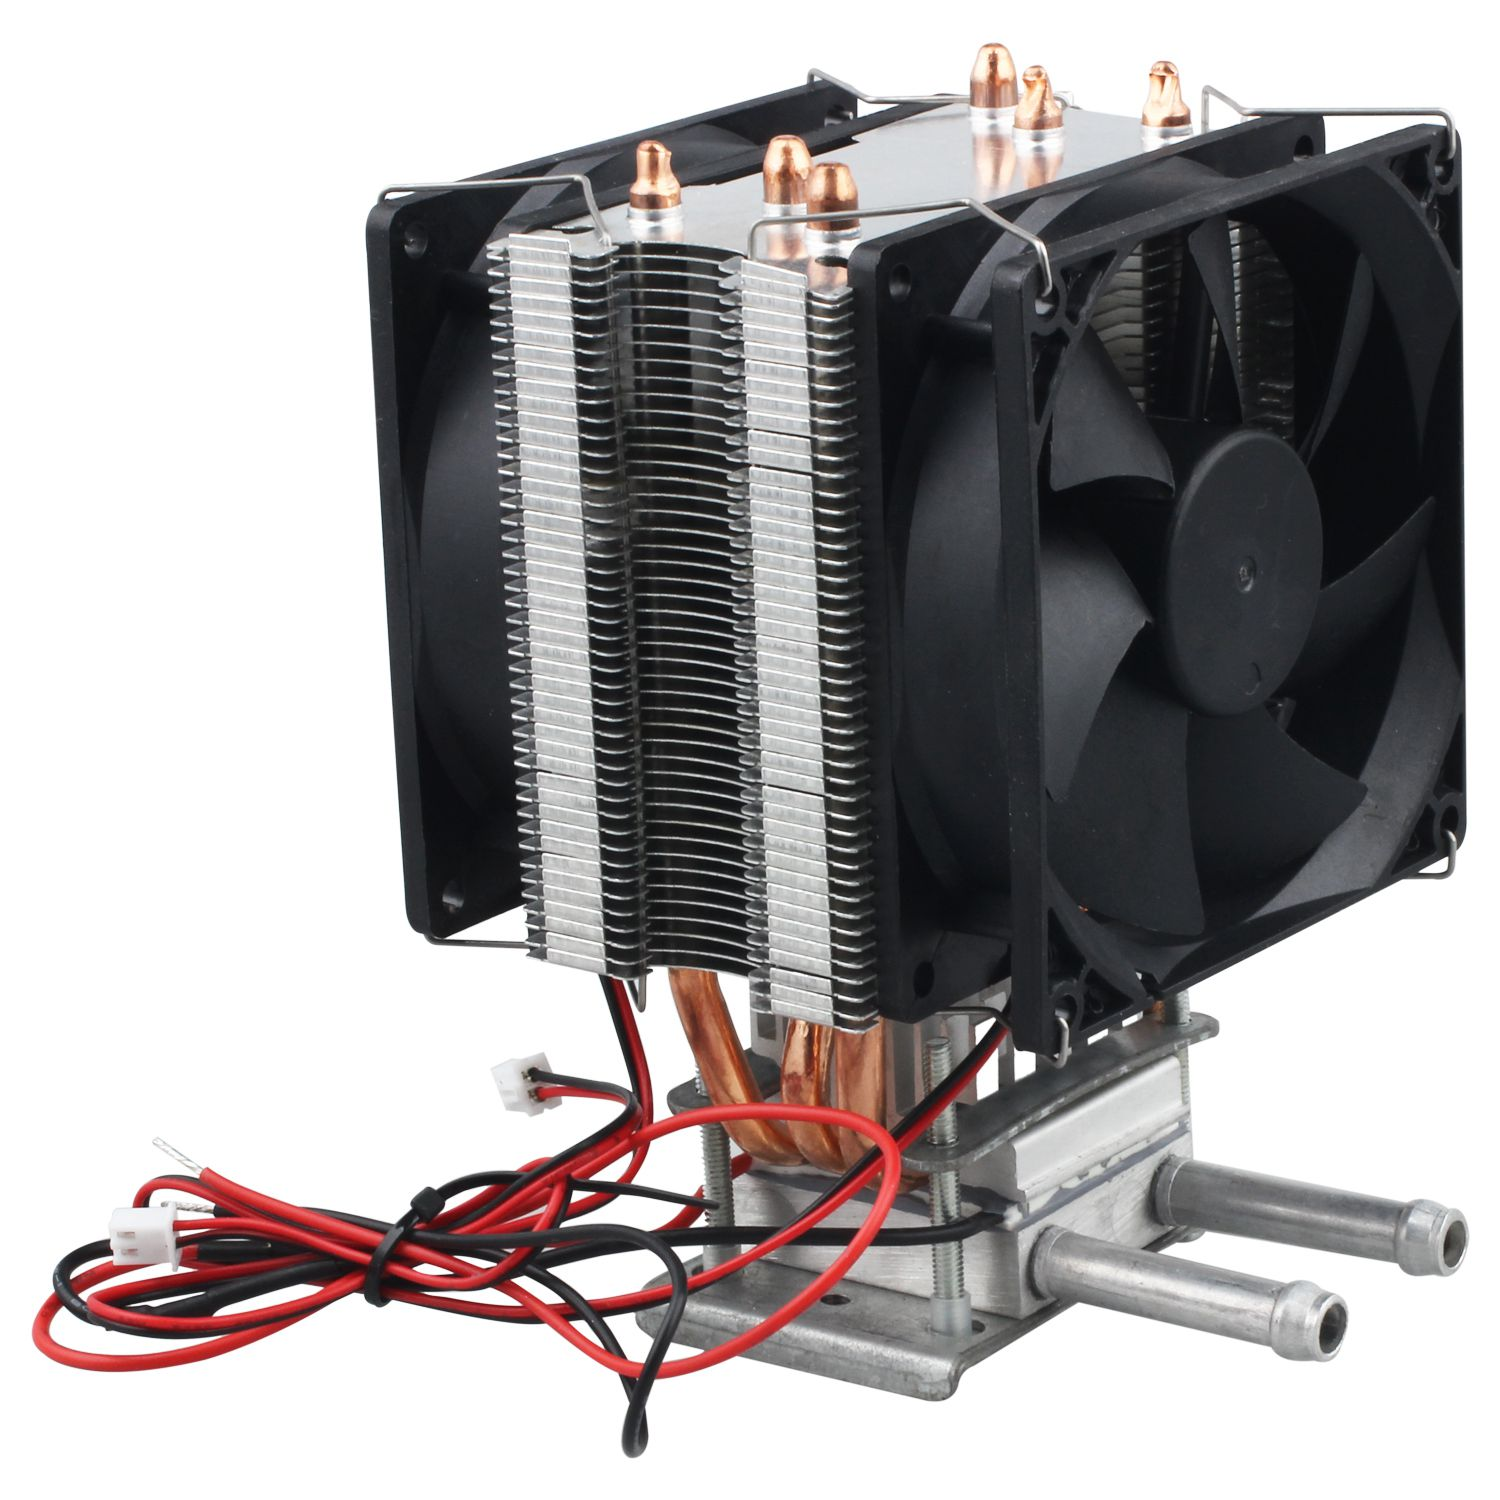 hot Thermoelectric Peltier Refrigeration DIY Water Cooling System Cooler Device 12V|Fans & Cooling| |  - title=